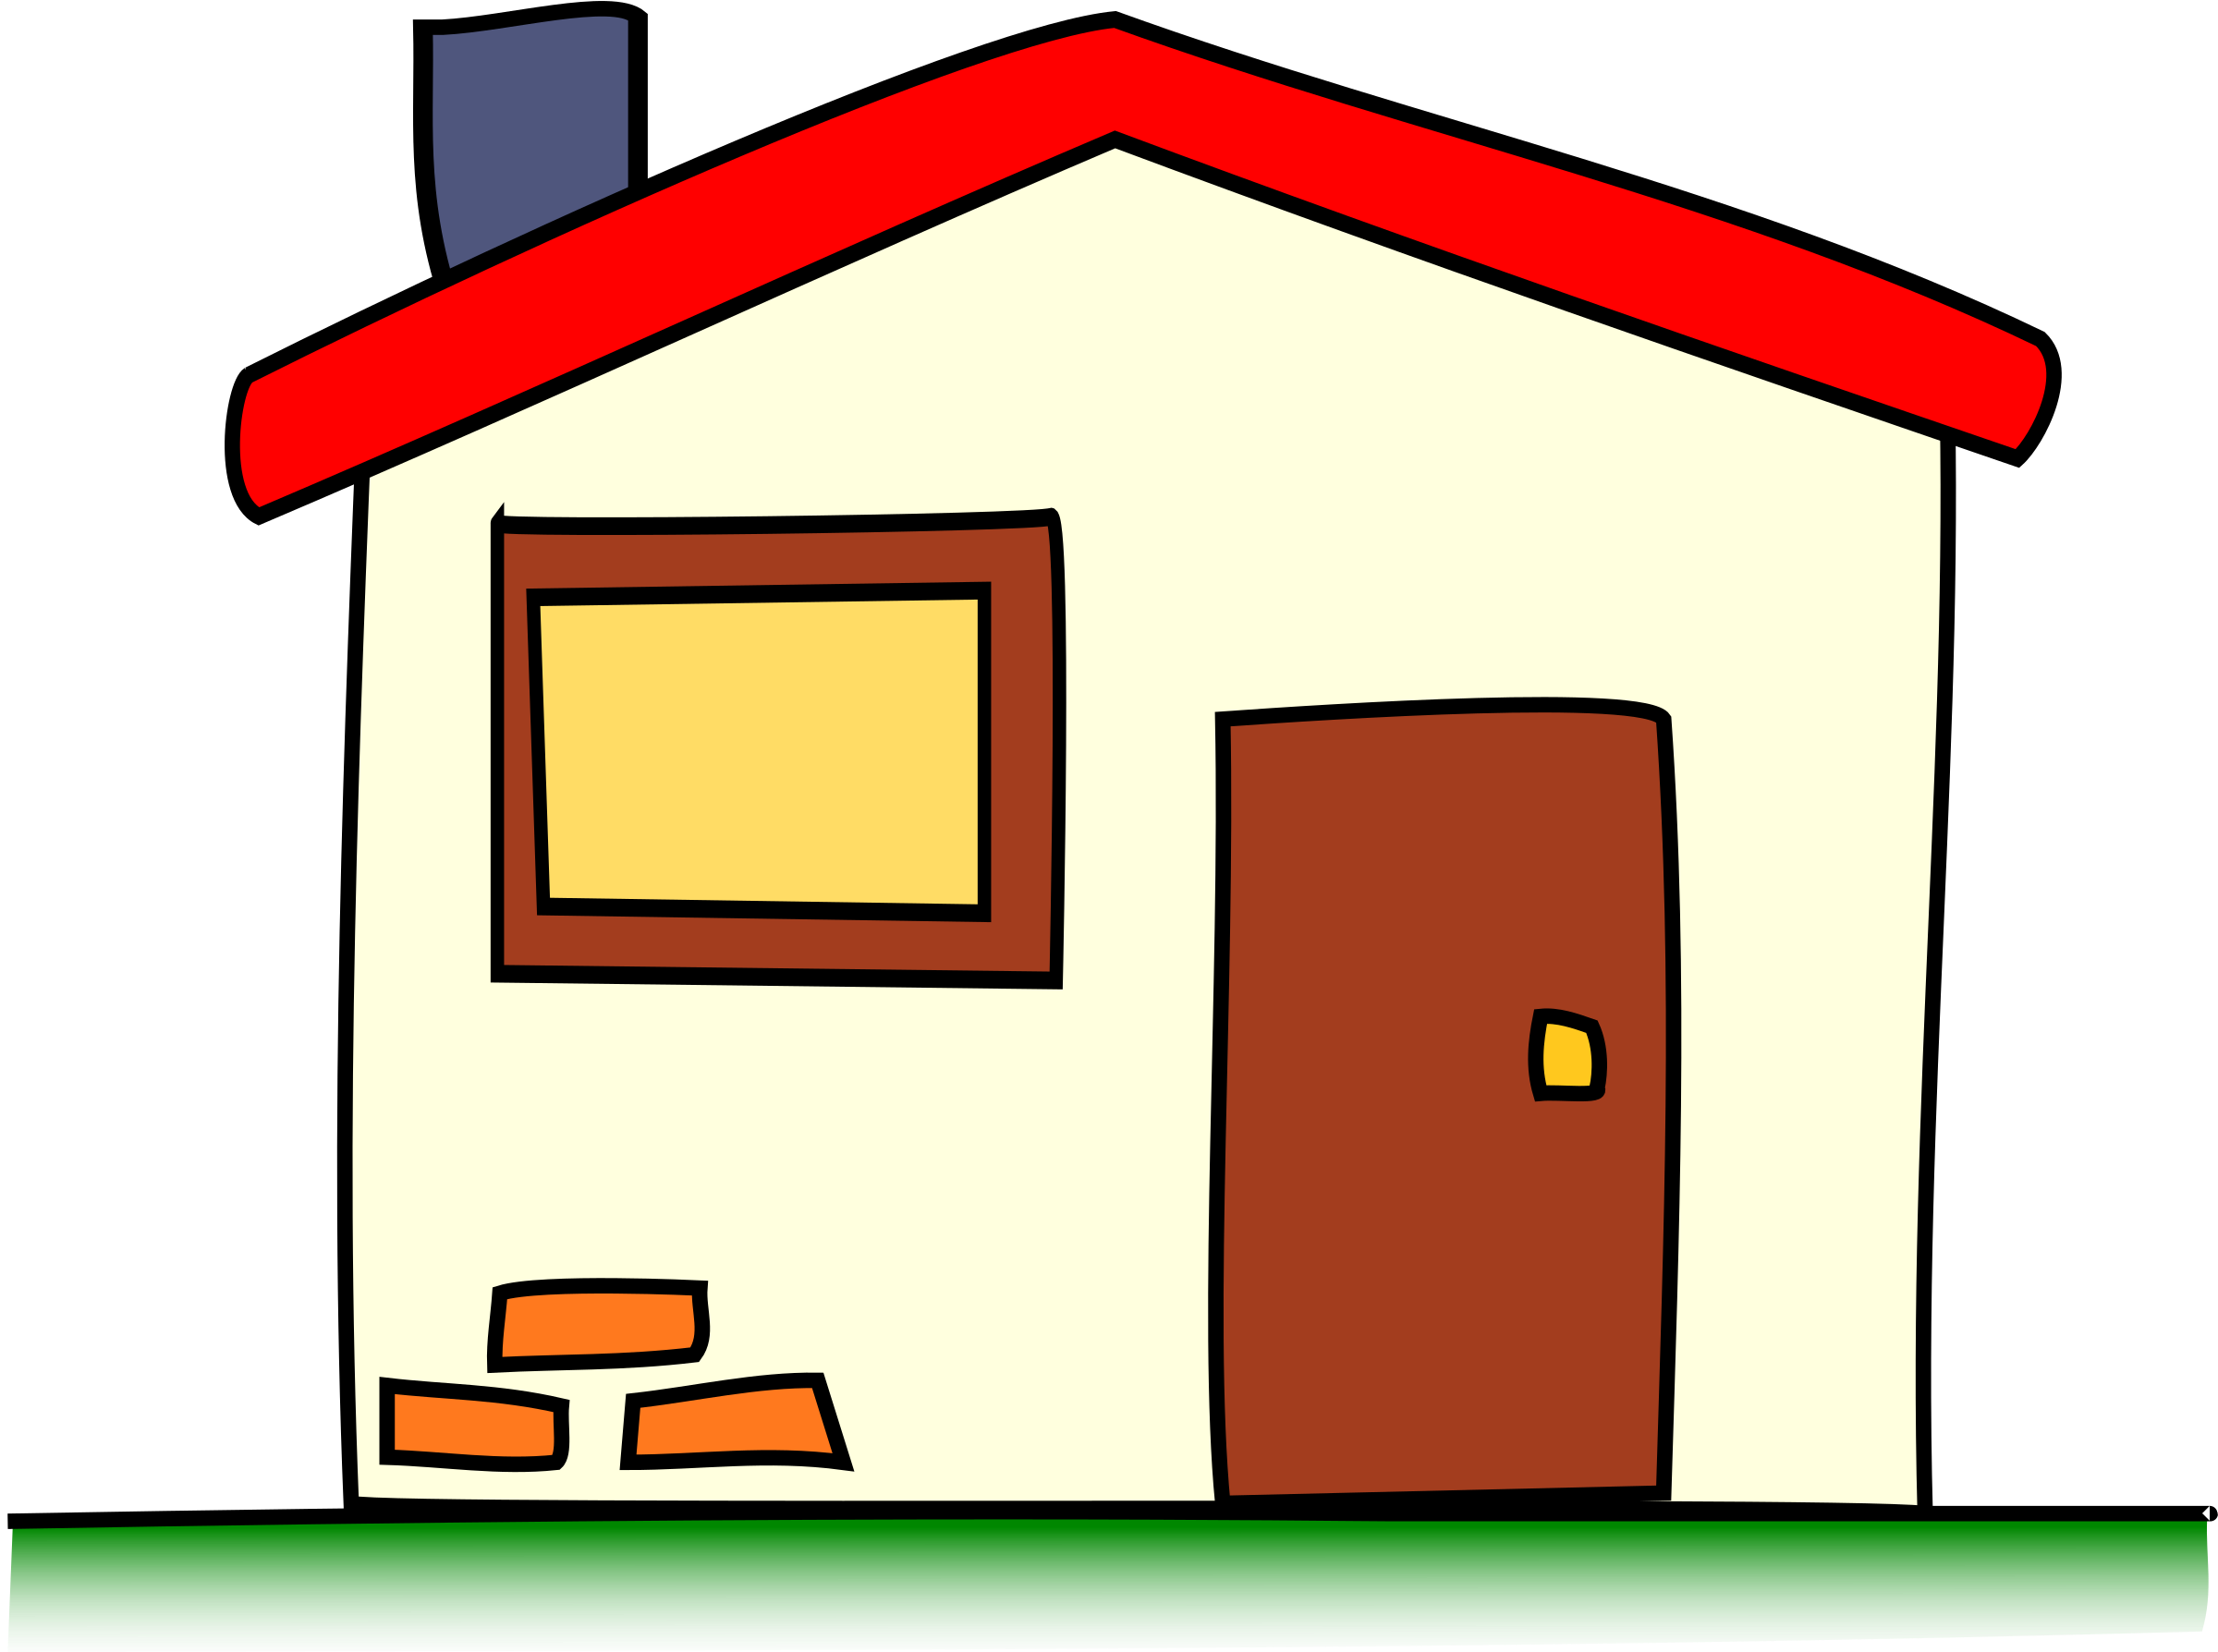 house silhouette clipart at getdrawings com free for personal use rh getdrawings com free house clip art borders free house clipart images